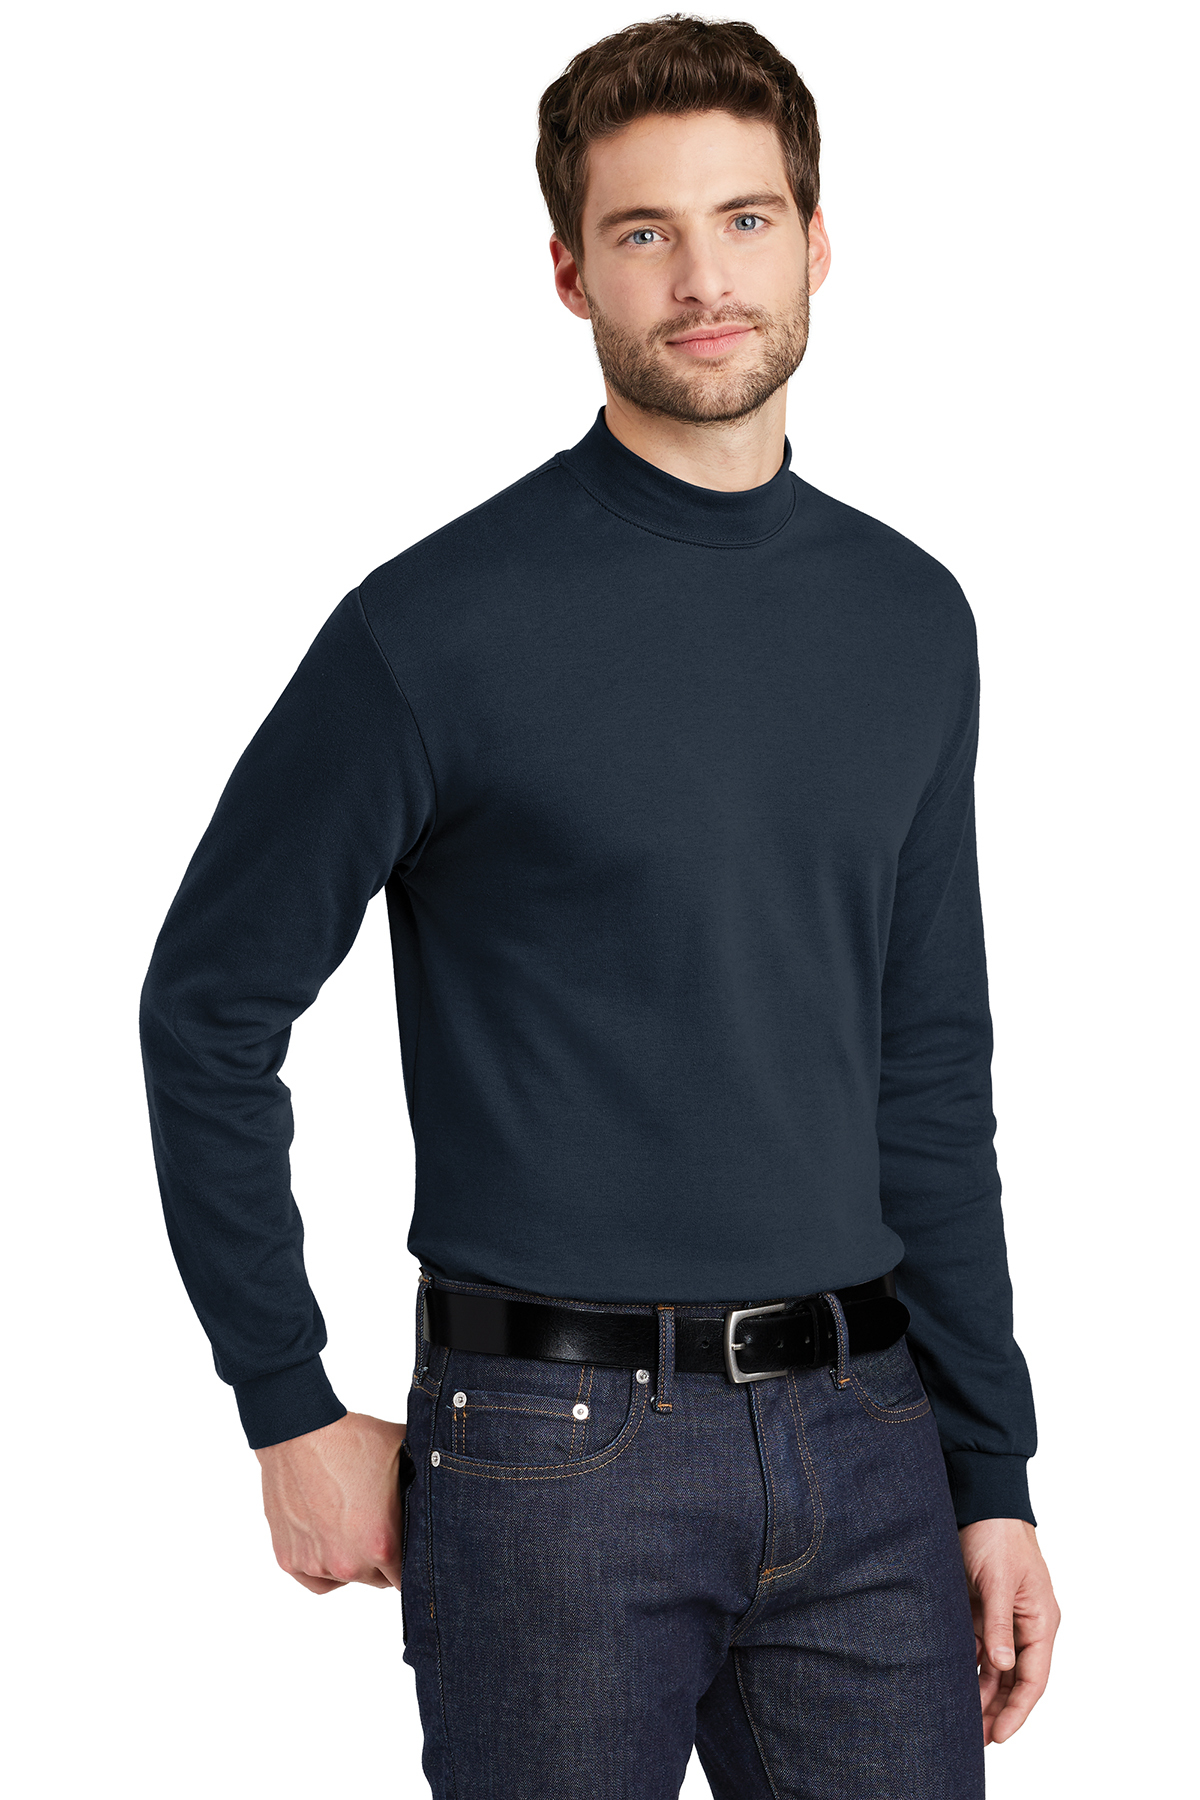 PORT AUTHORITY MOCK TURTLE NECK LONG SLEEVE SHIRT VARIOUS SIZES AND COLORS